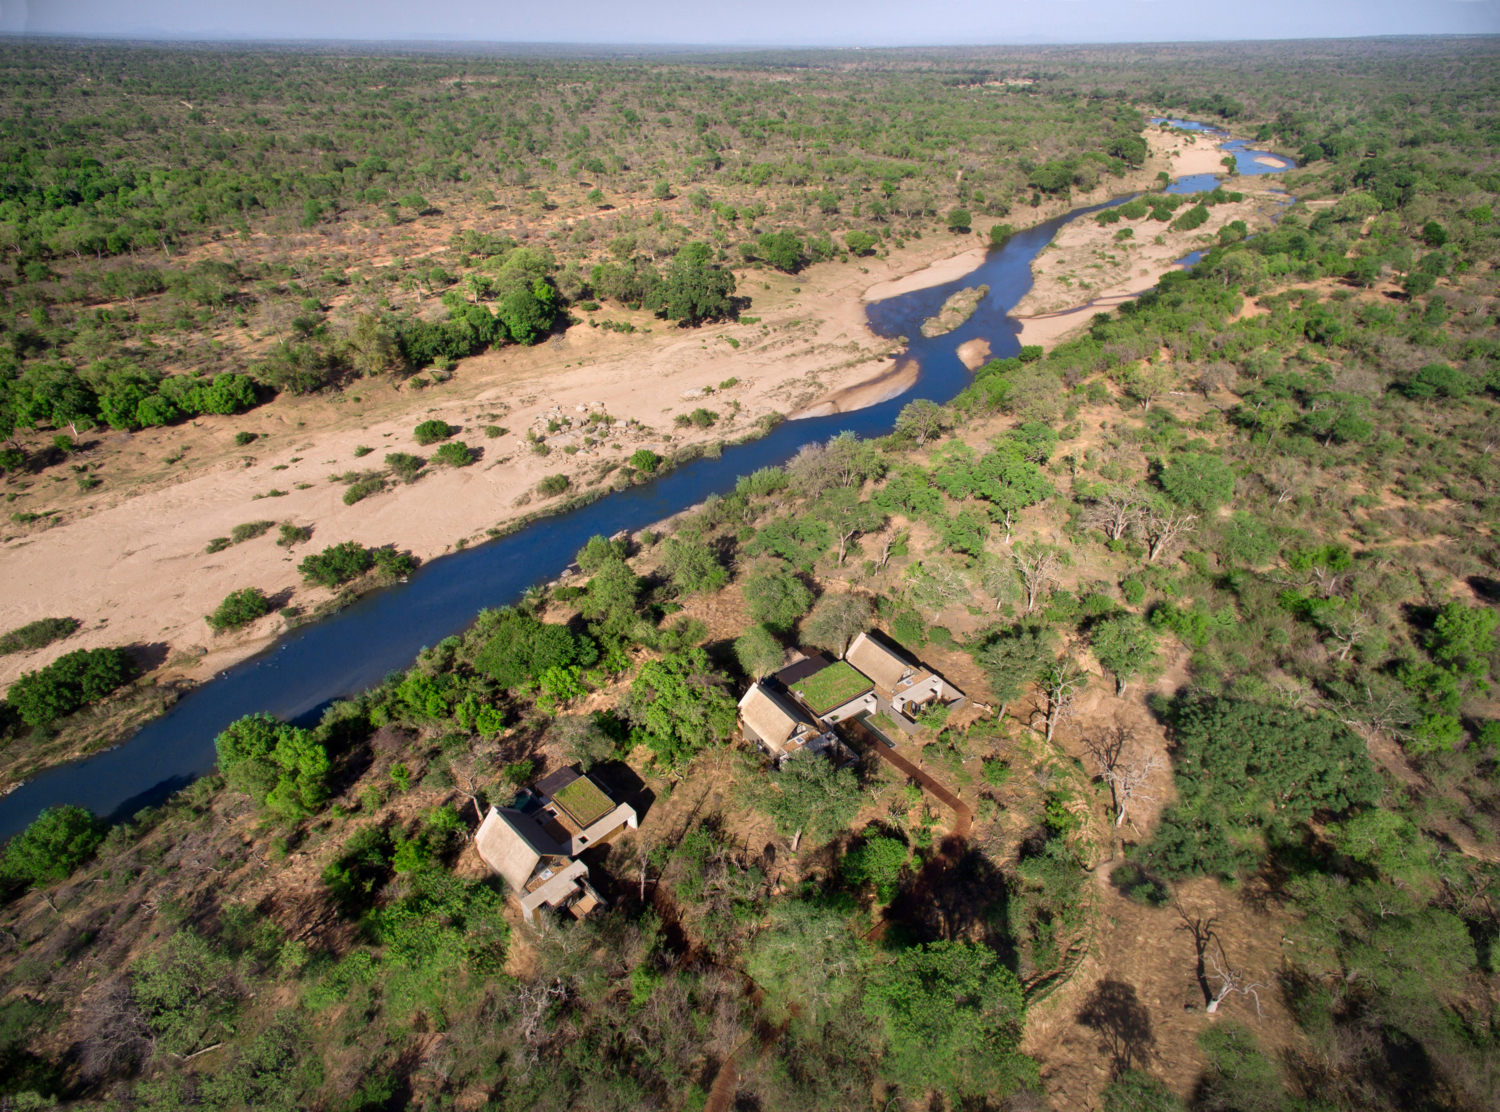 ivory_lodge_-_aerial_view2_preview_maxwidth_1500_maxheight_1500_ppi_300_quality_100.jpg